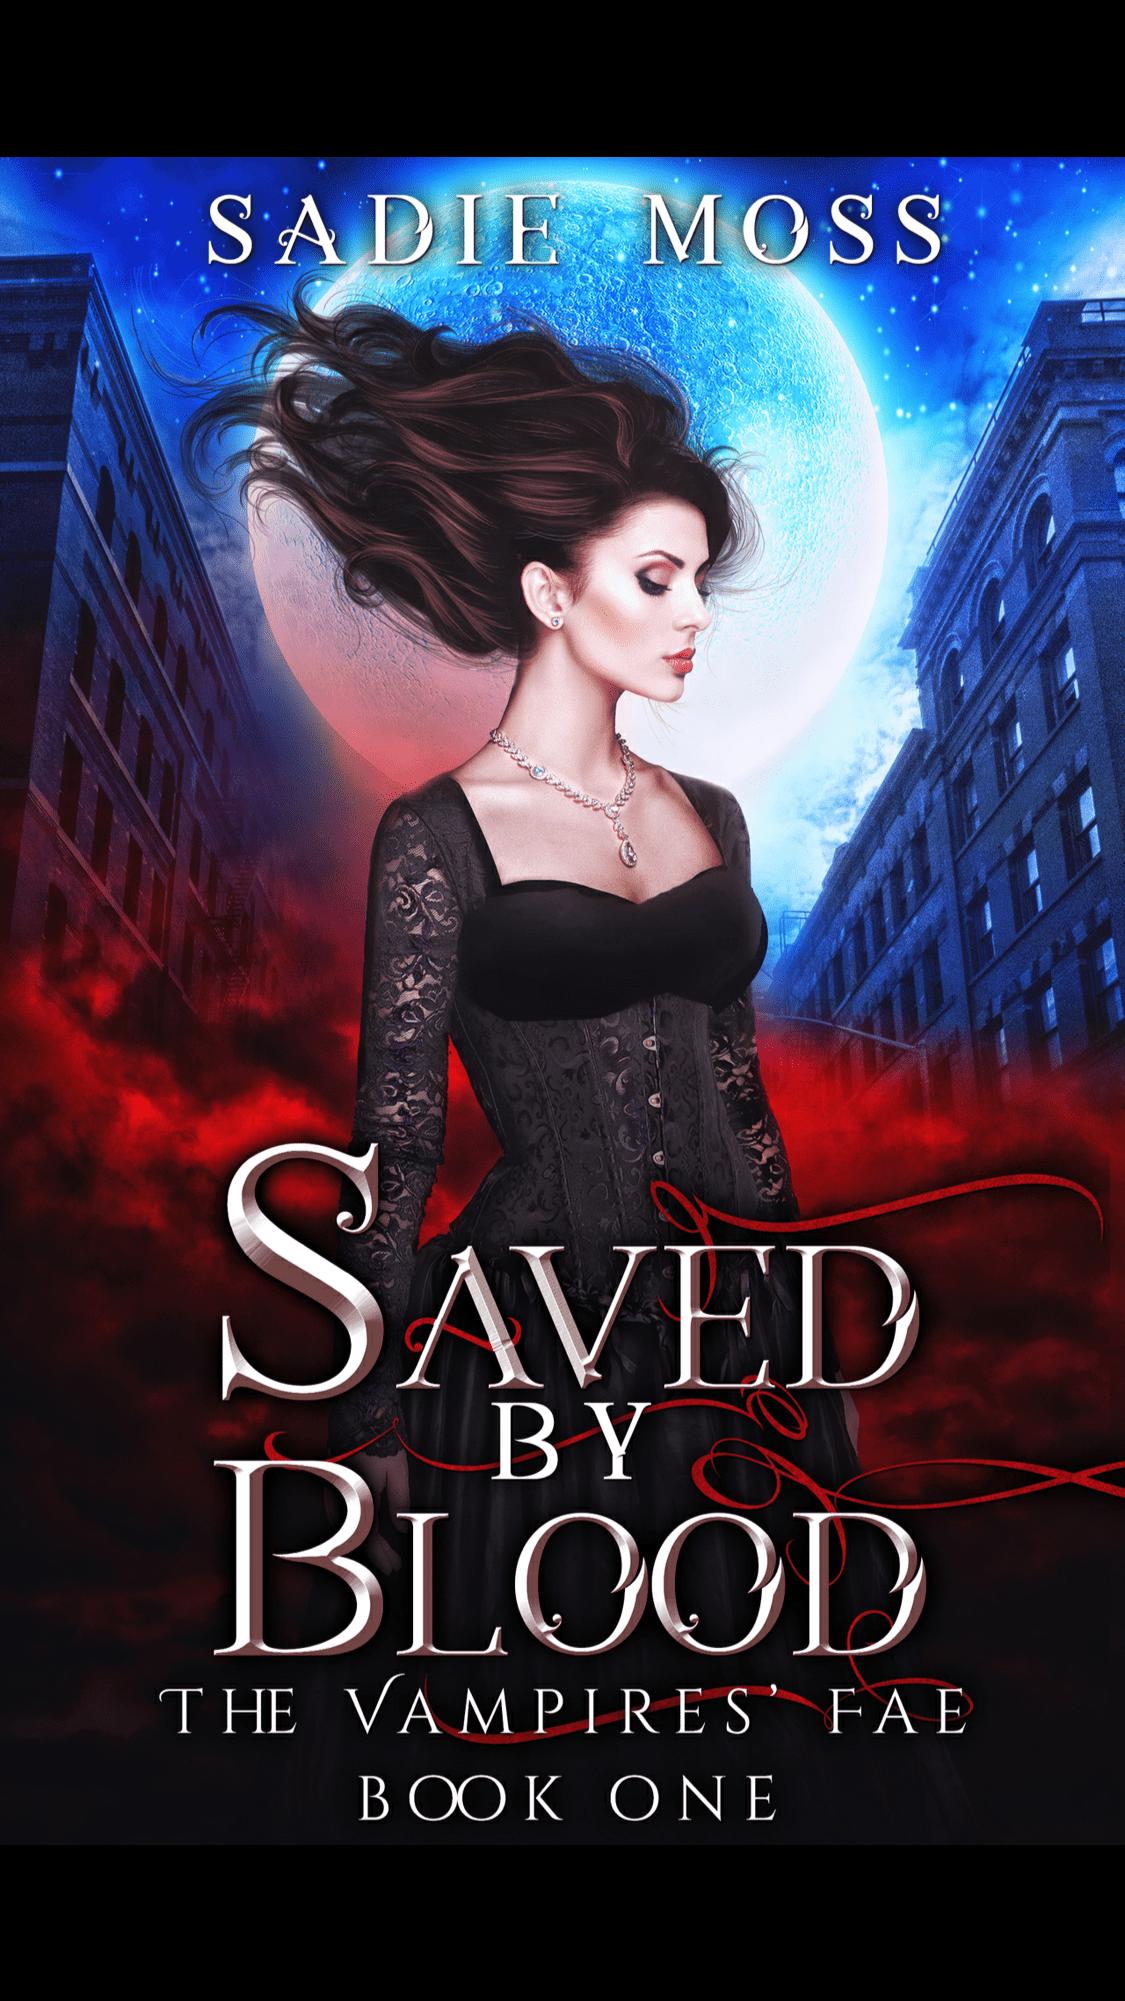 Saved by Blood by Sadie Moss – A Book Review